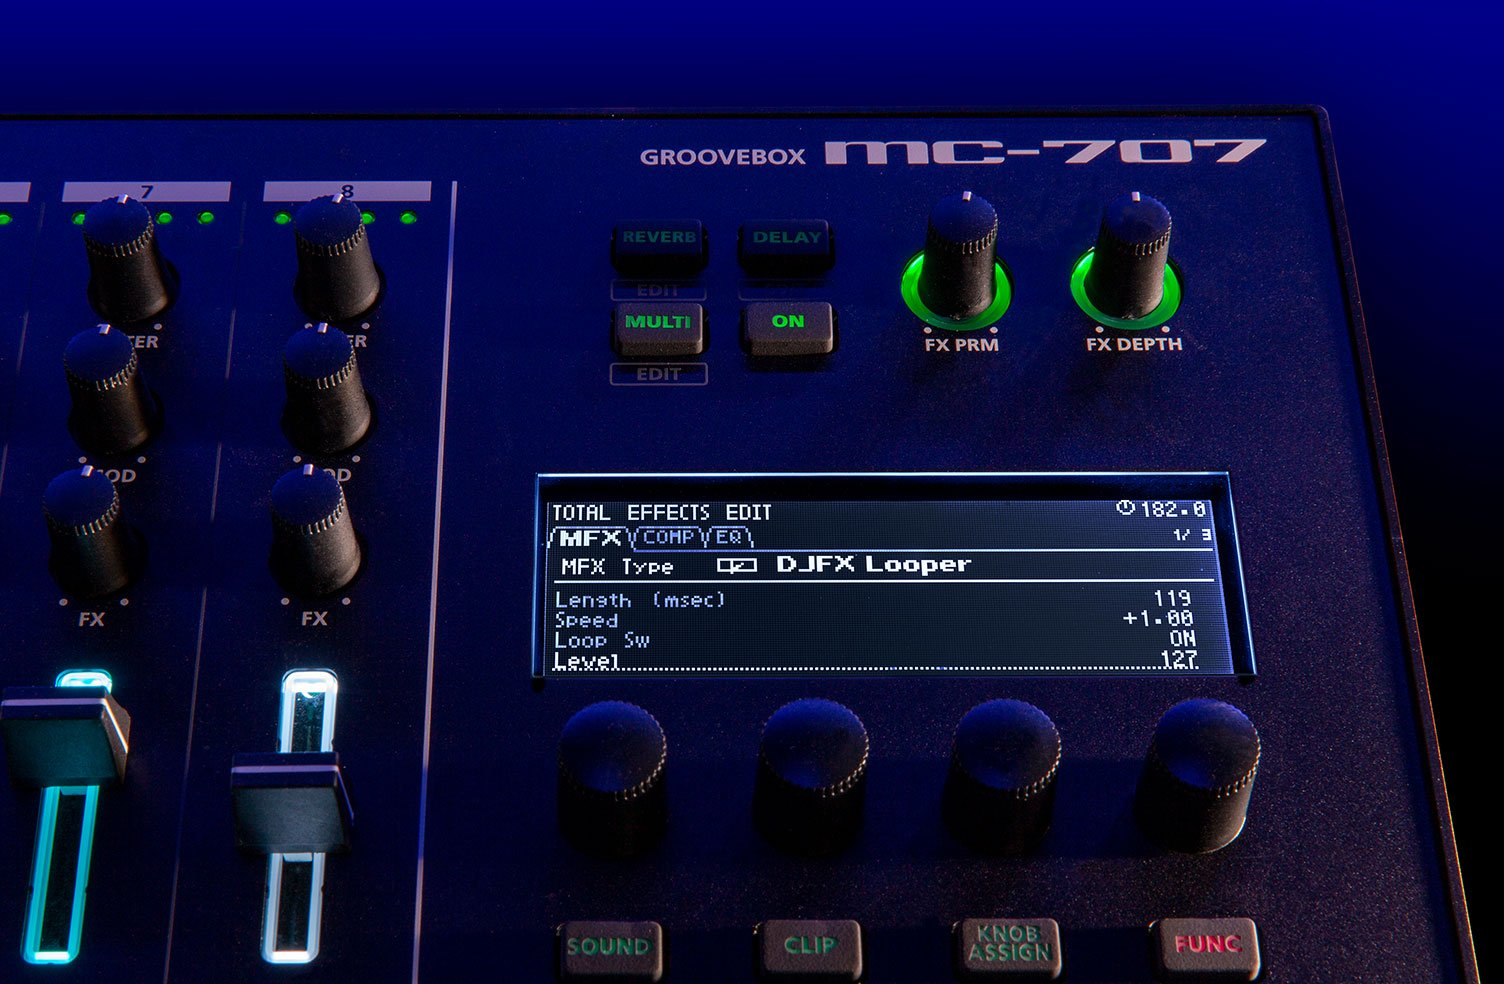 The MC-707 will boast some awesome studio-quality effects.